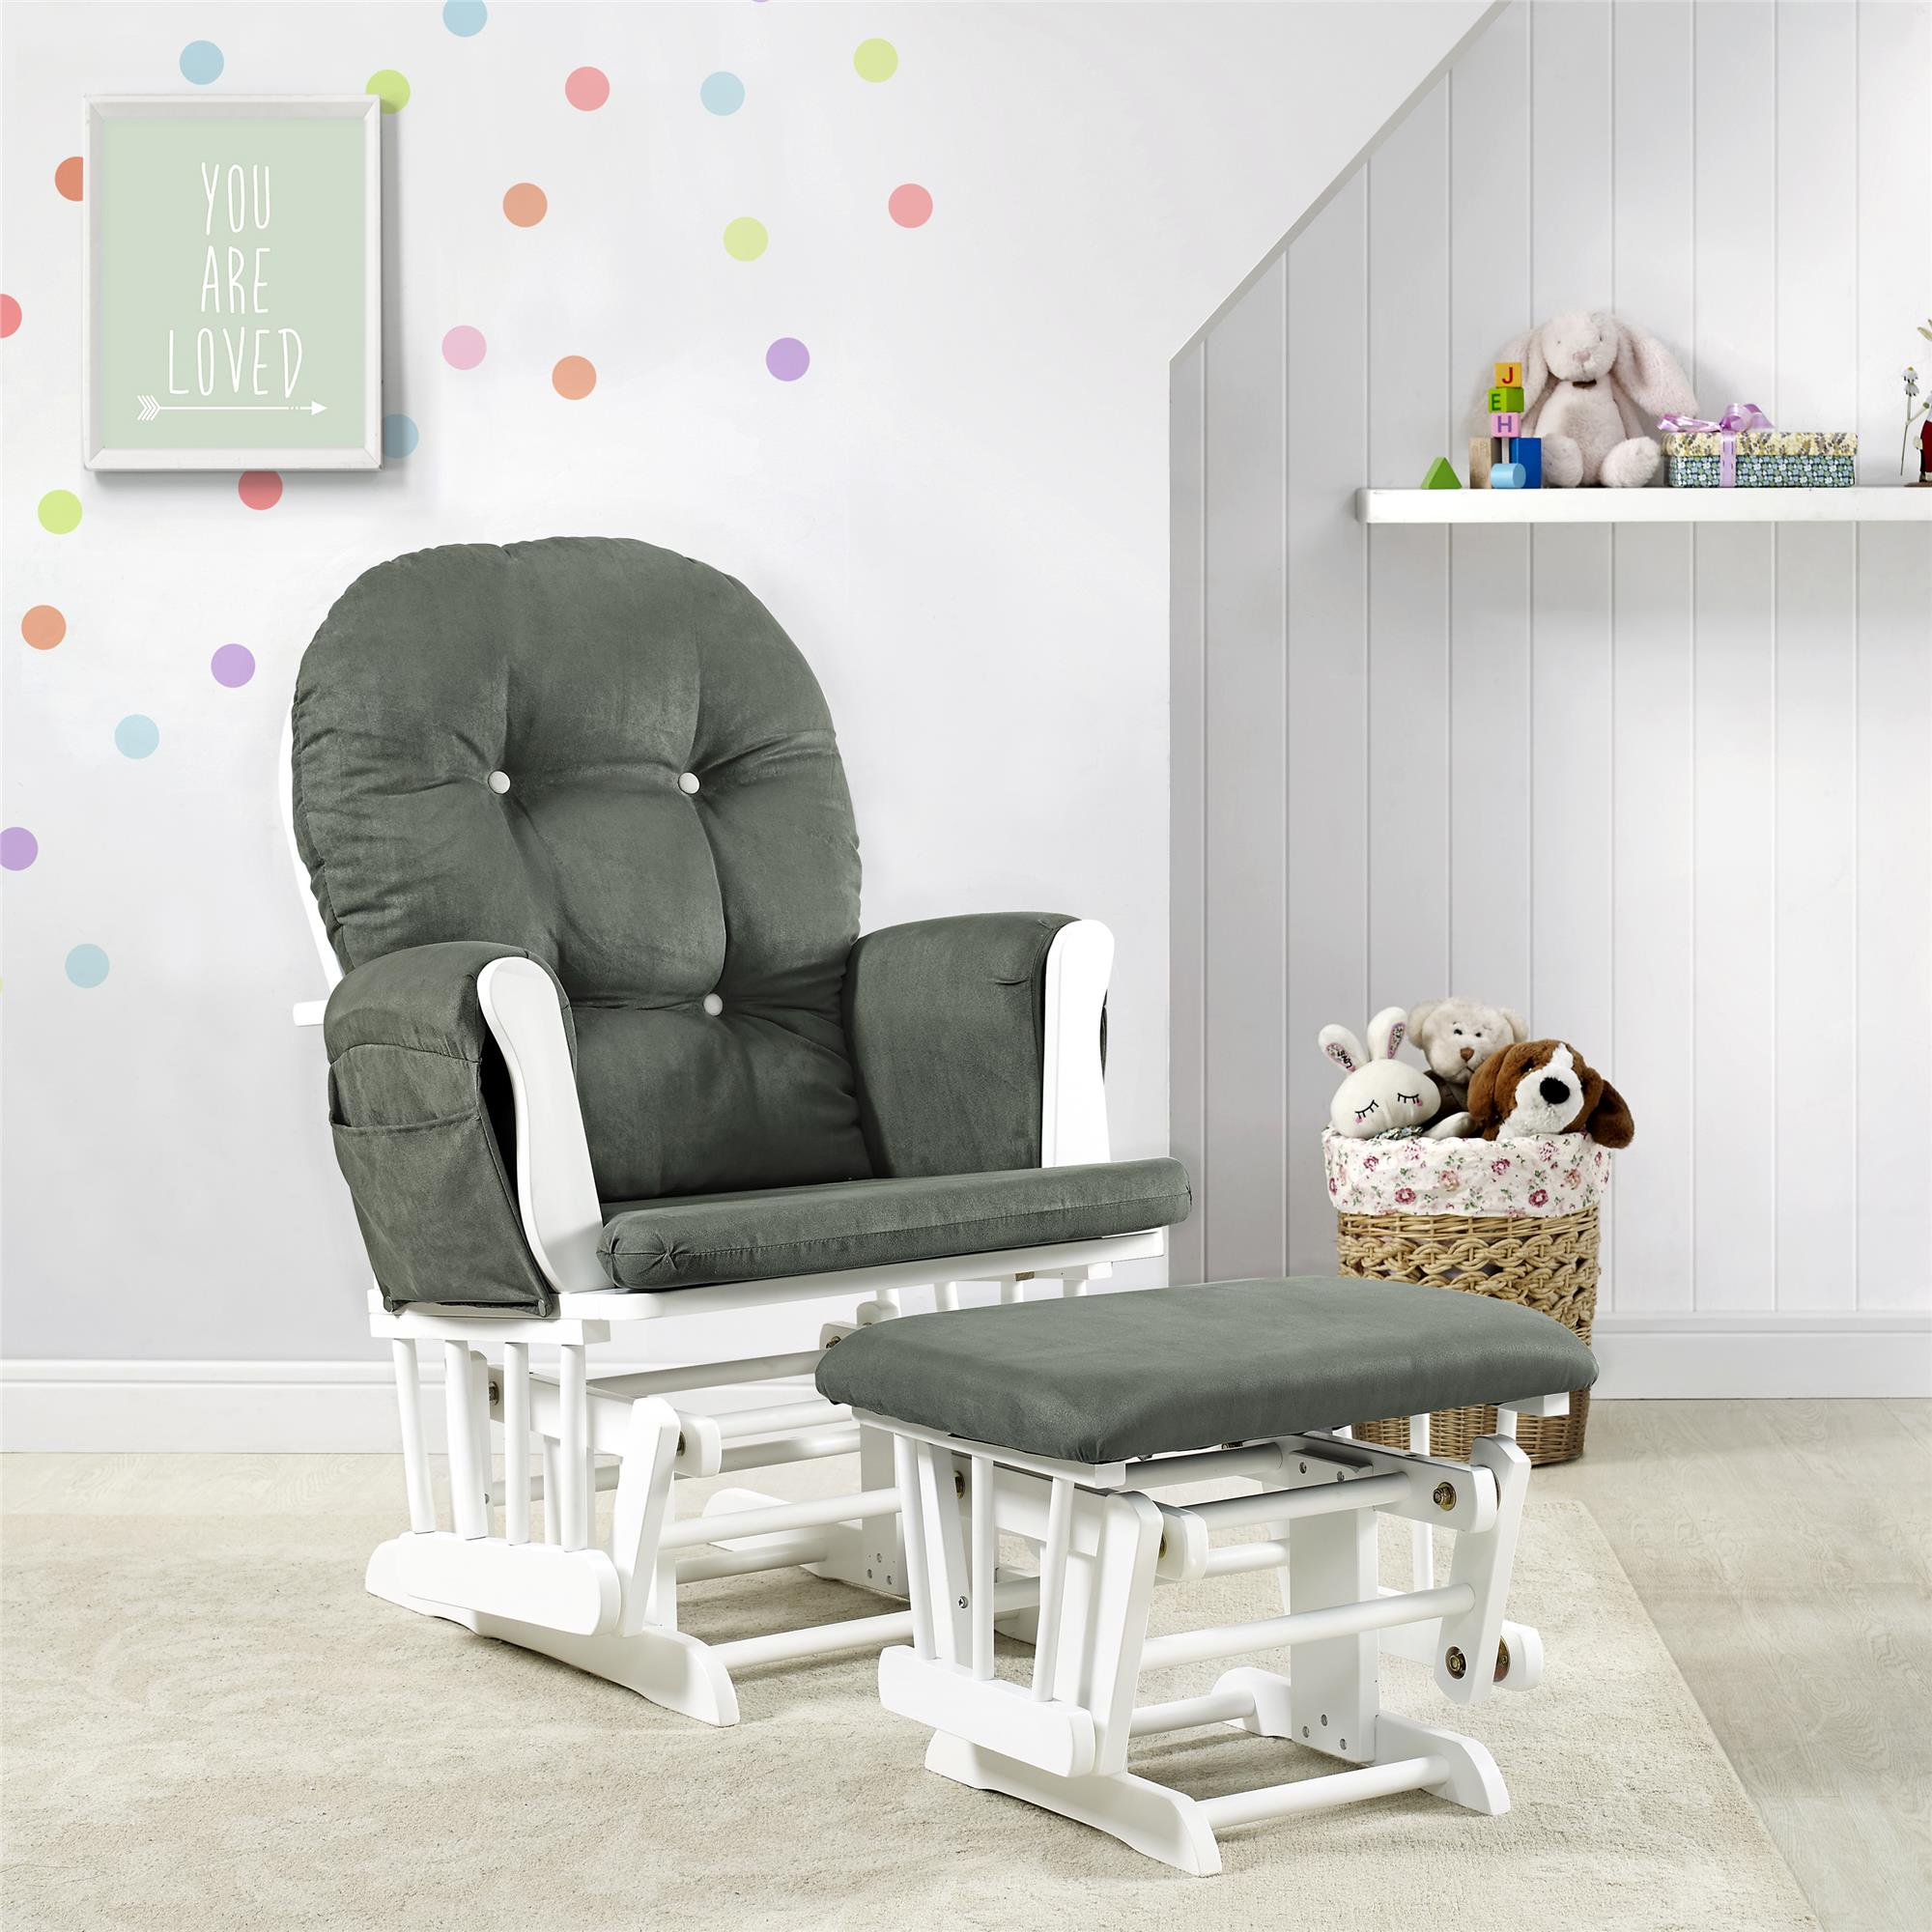 Baby Rocking Chairs Details About Glider Ottoman Set Baby Rocker Rocking Chair Gray White Nursery Furniture